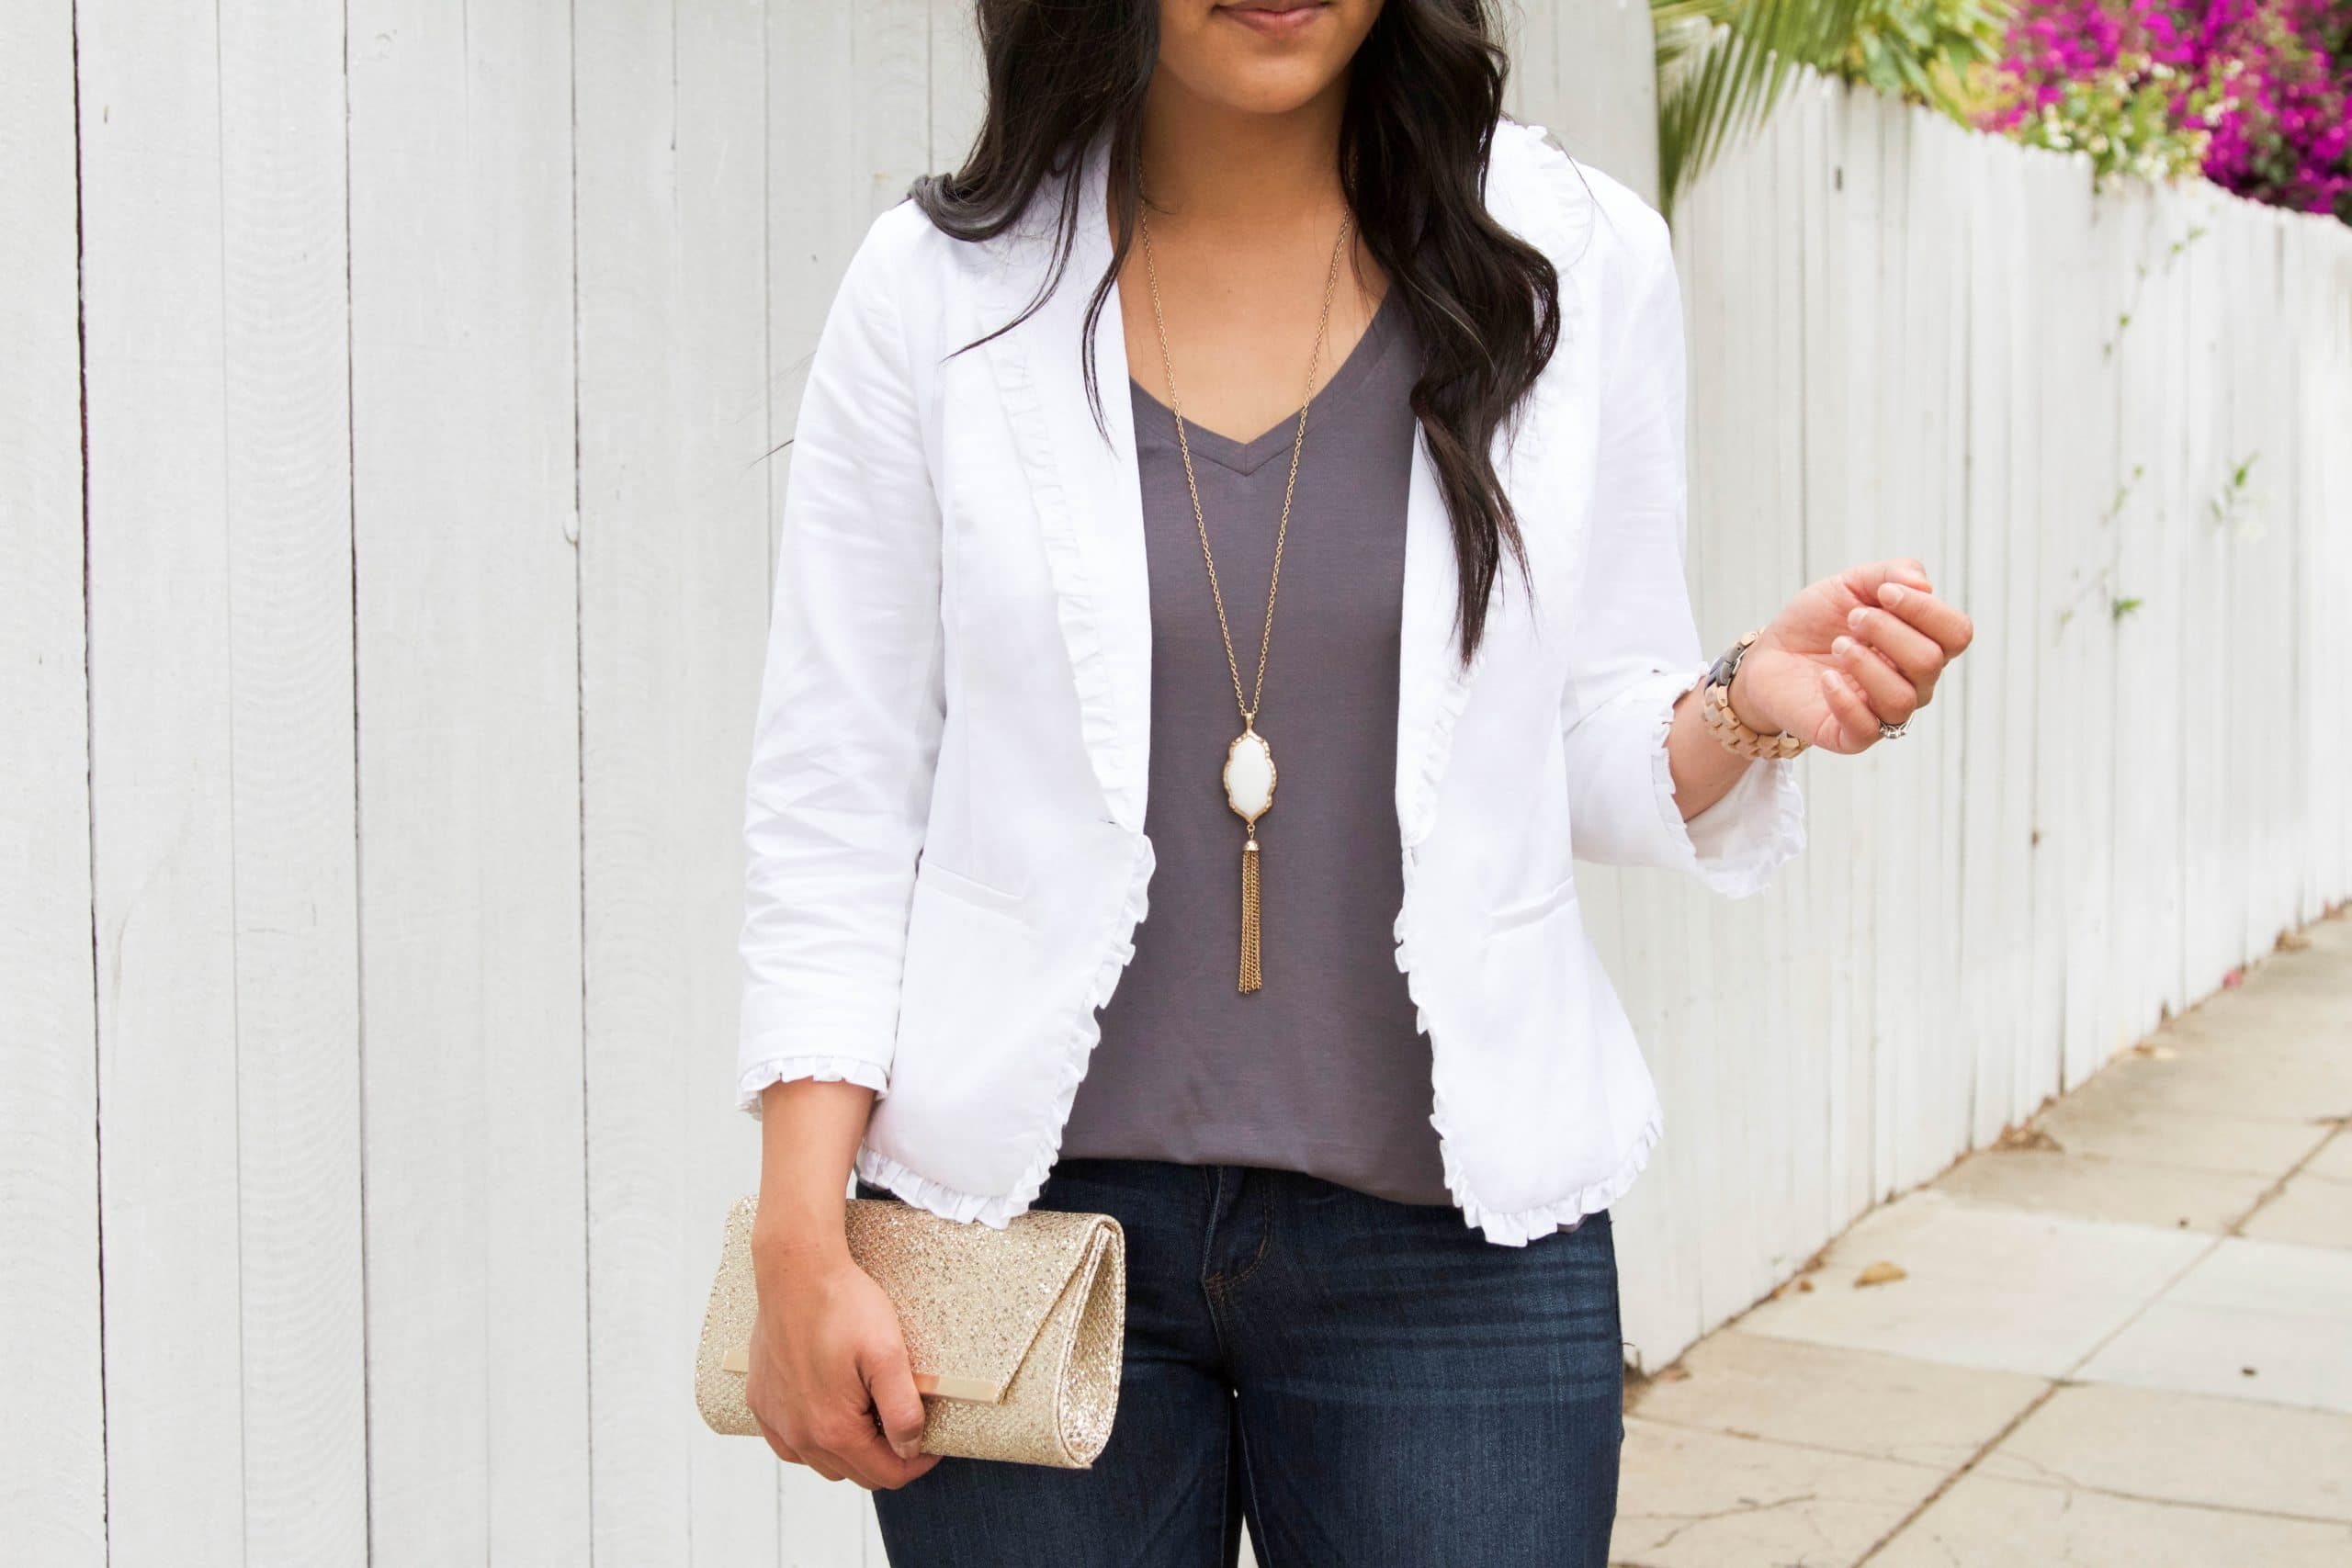 White Blazer + Grey Tank + Gold Clutch + White Necklace